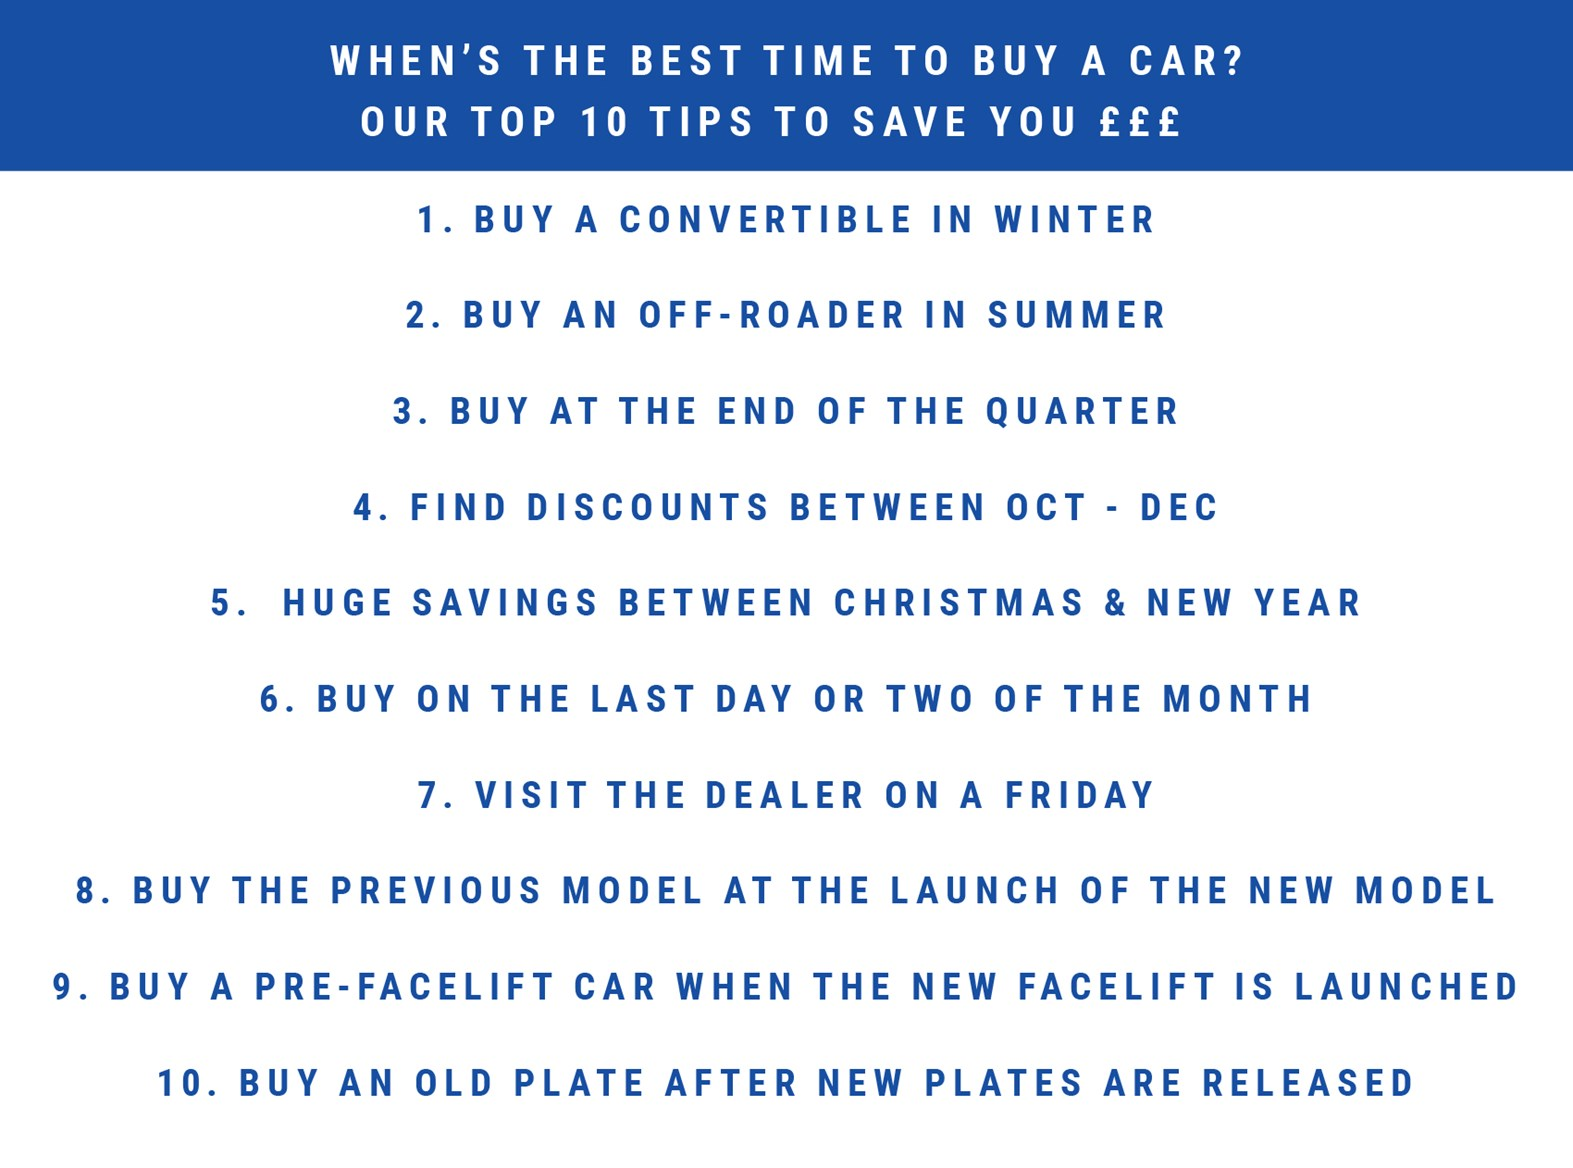 When's the best time to buy a car?